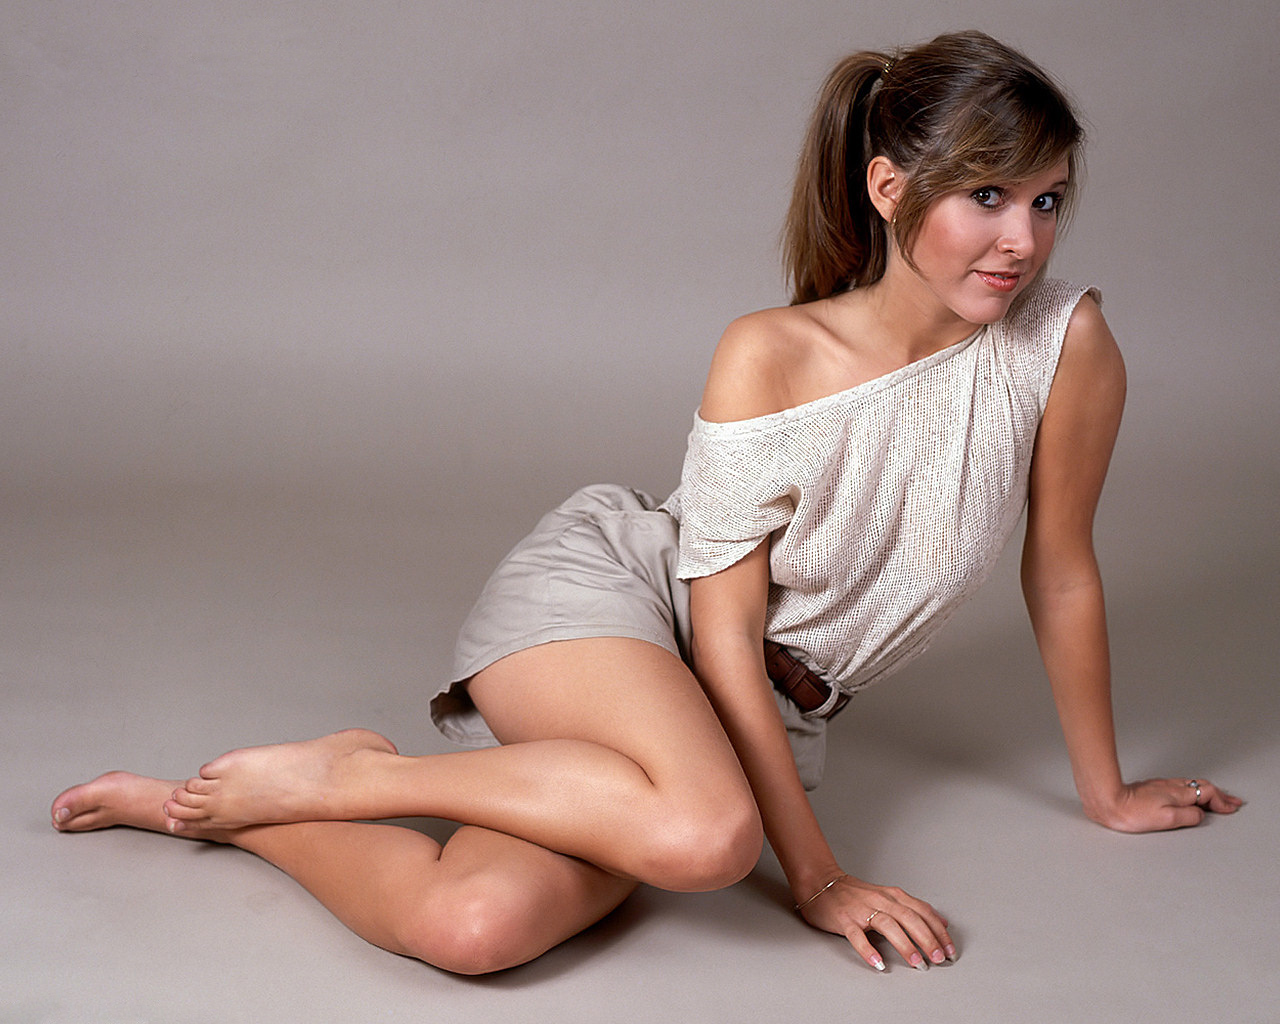 HQ Carrie Fisher Wallpapers | File 396.01Kb